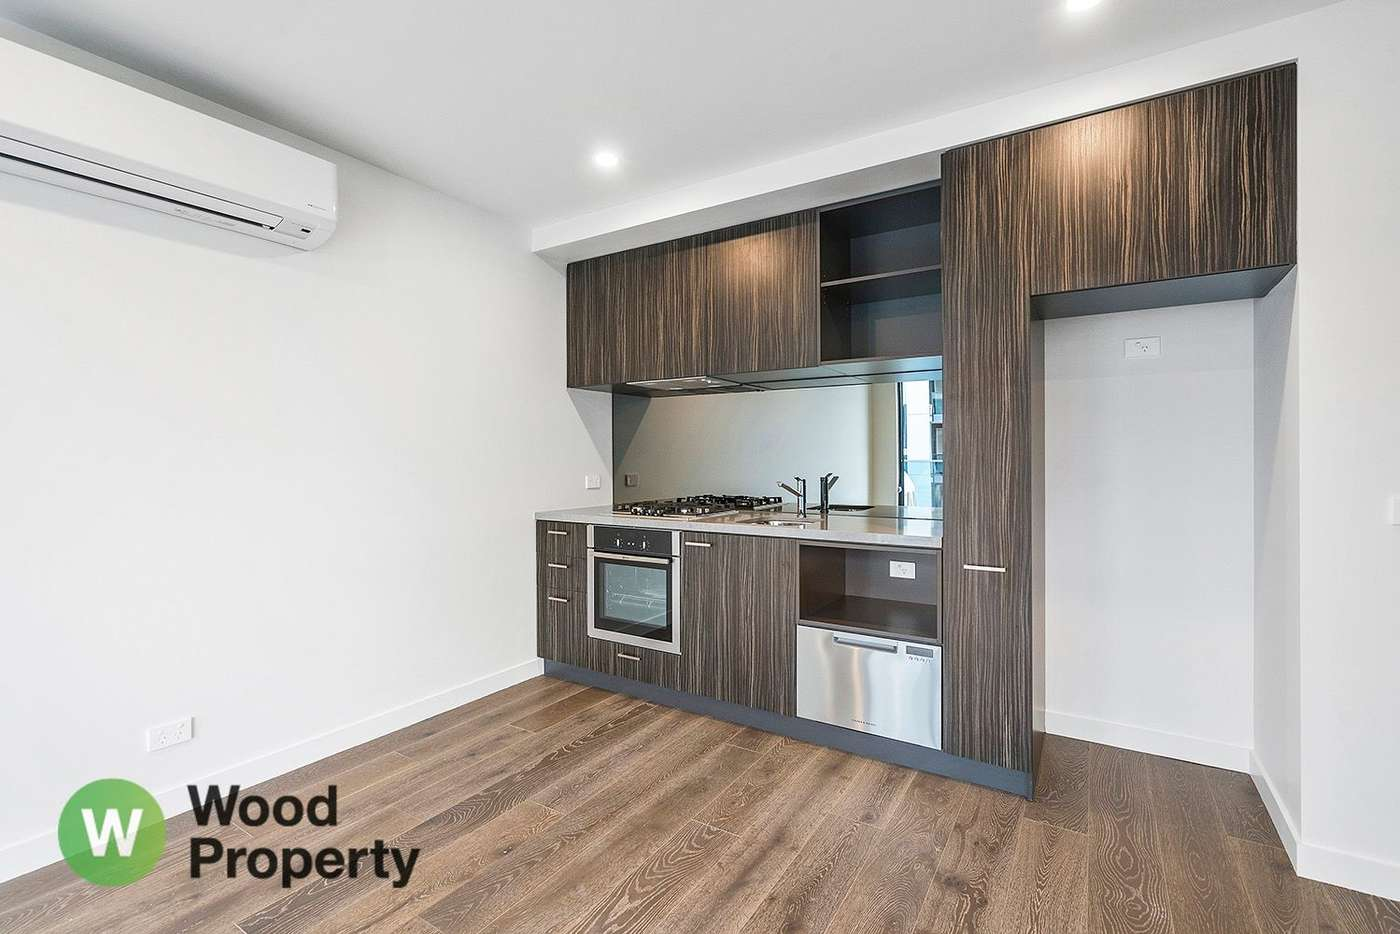 Main view of Homely apartment listing, 621/8 Railway Road, Cheltenham VIC 3192